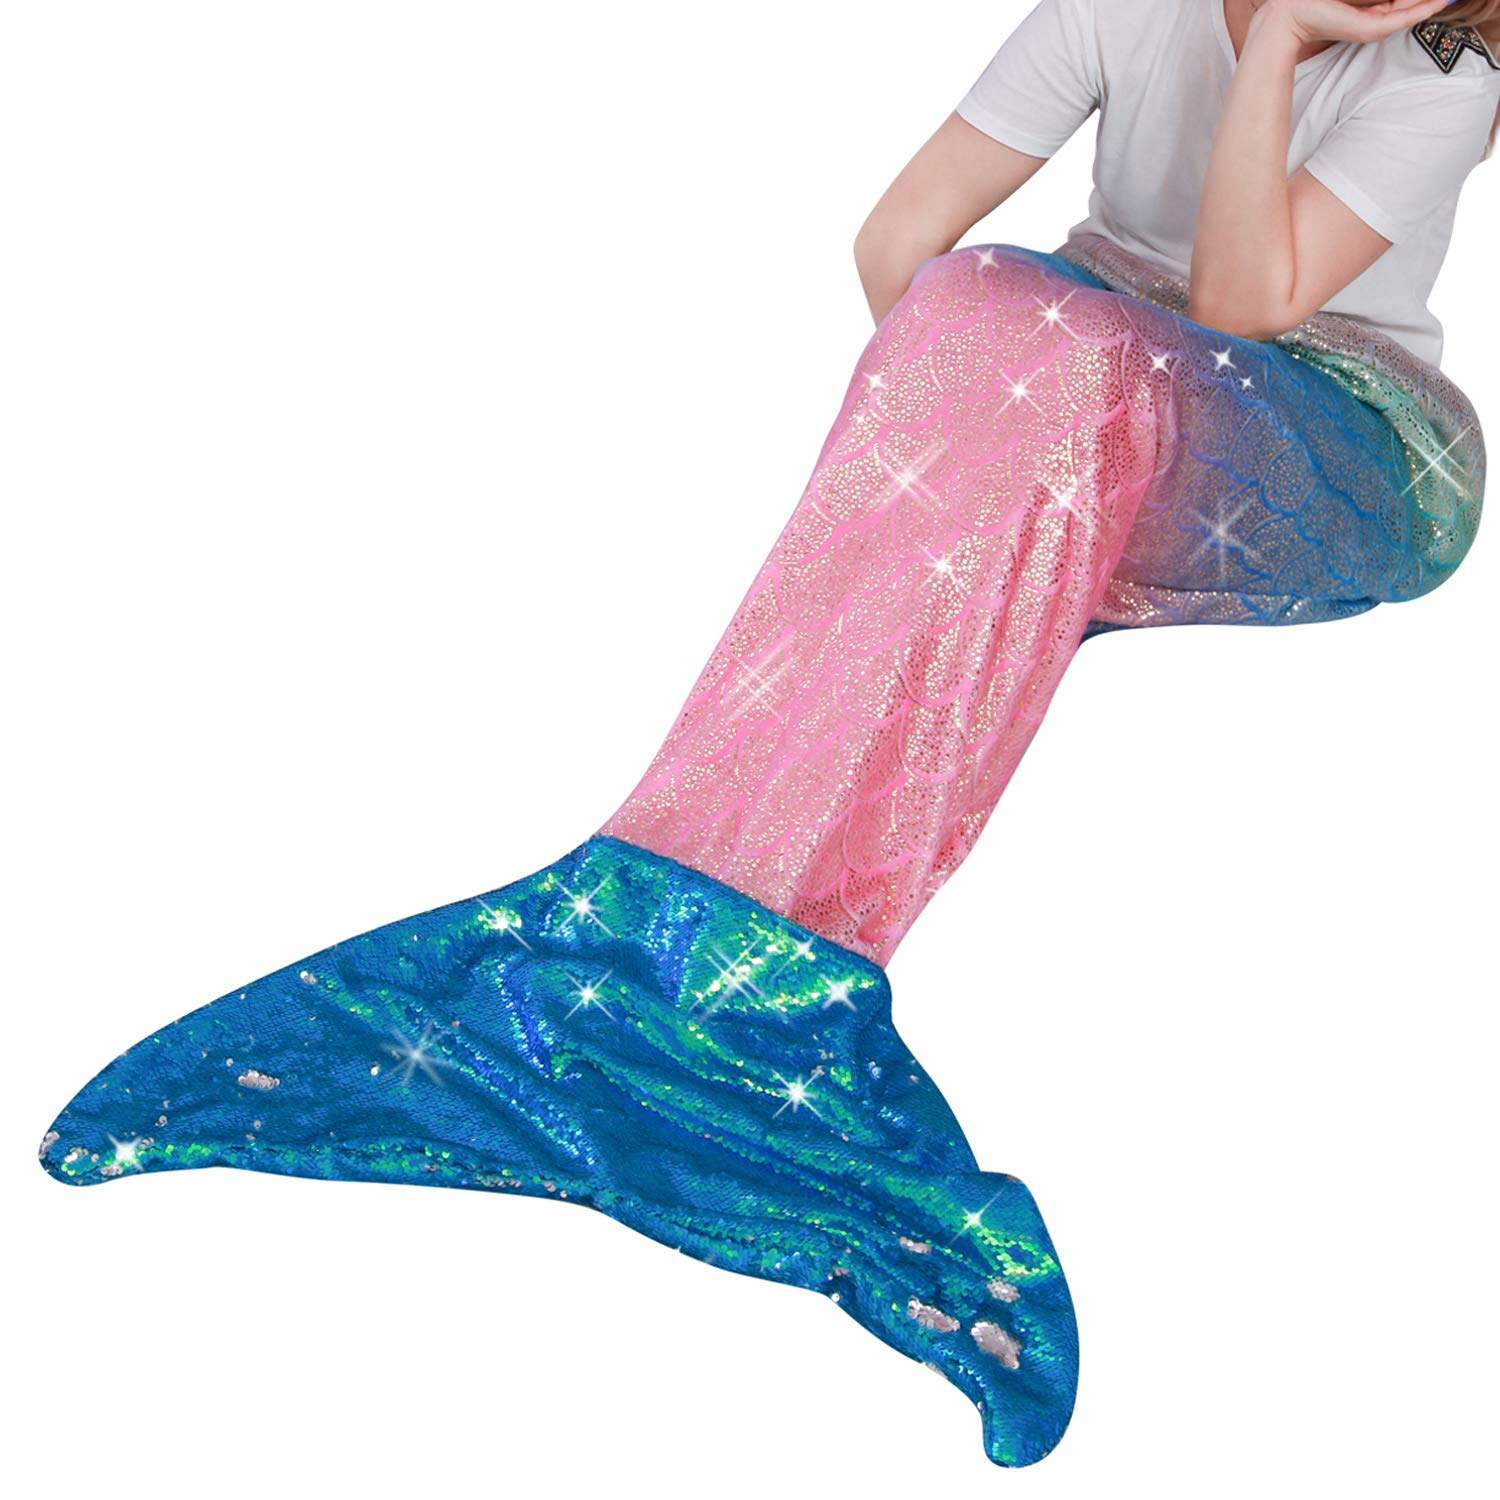 "Mermaid Tail Blanket for Kid Teen Adult,Plush Soft Flannel Fleece All Seasons Sleeping Bag with Twinkle Sequins Tail,Rainbow Glittering Fish Scale Design Snuggle Blanket,Best Gifts for Girls,25""×60"" product image"